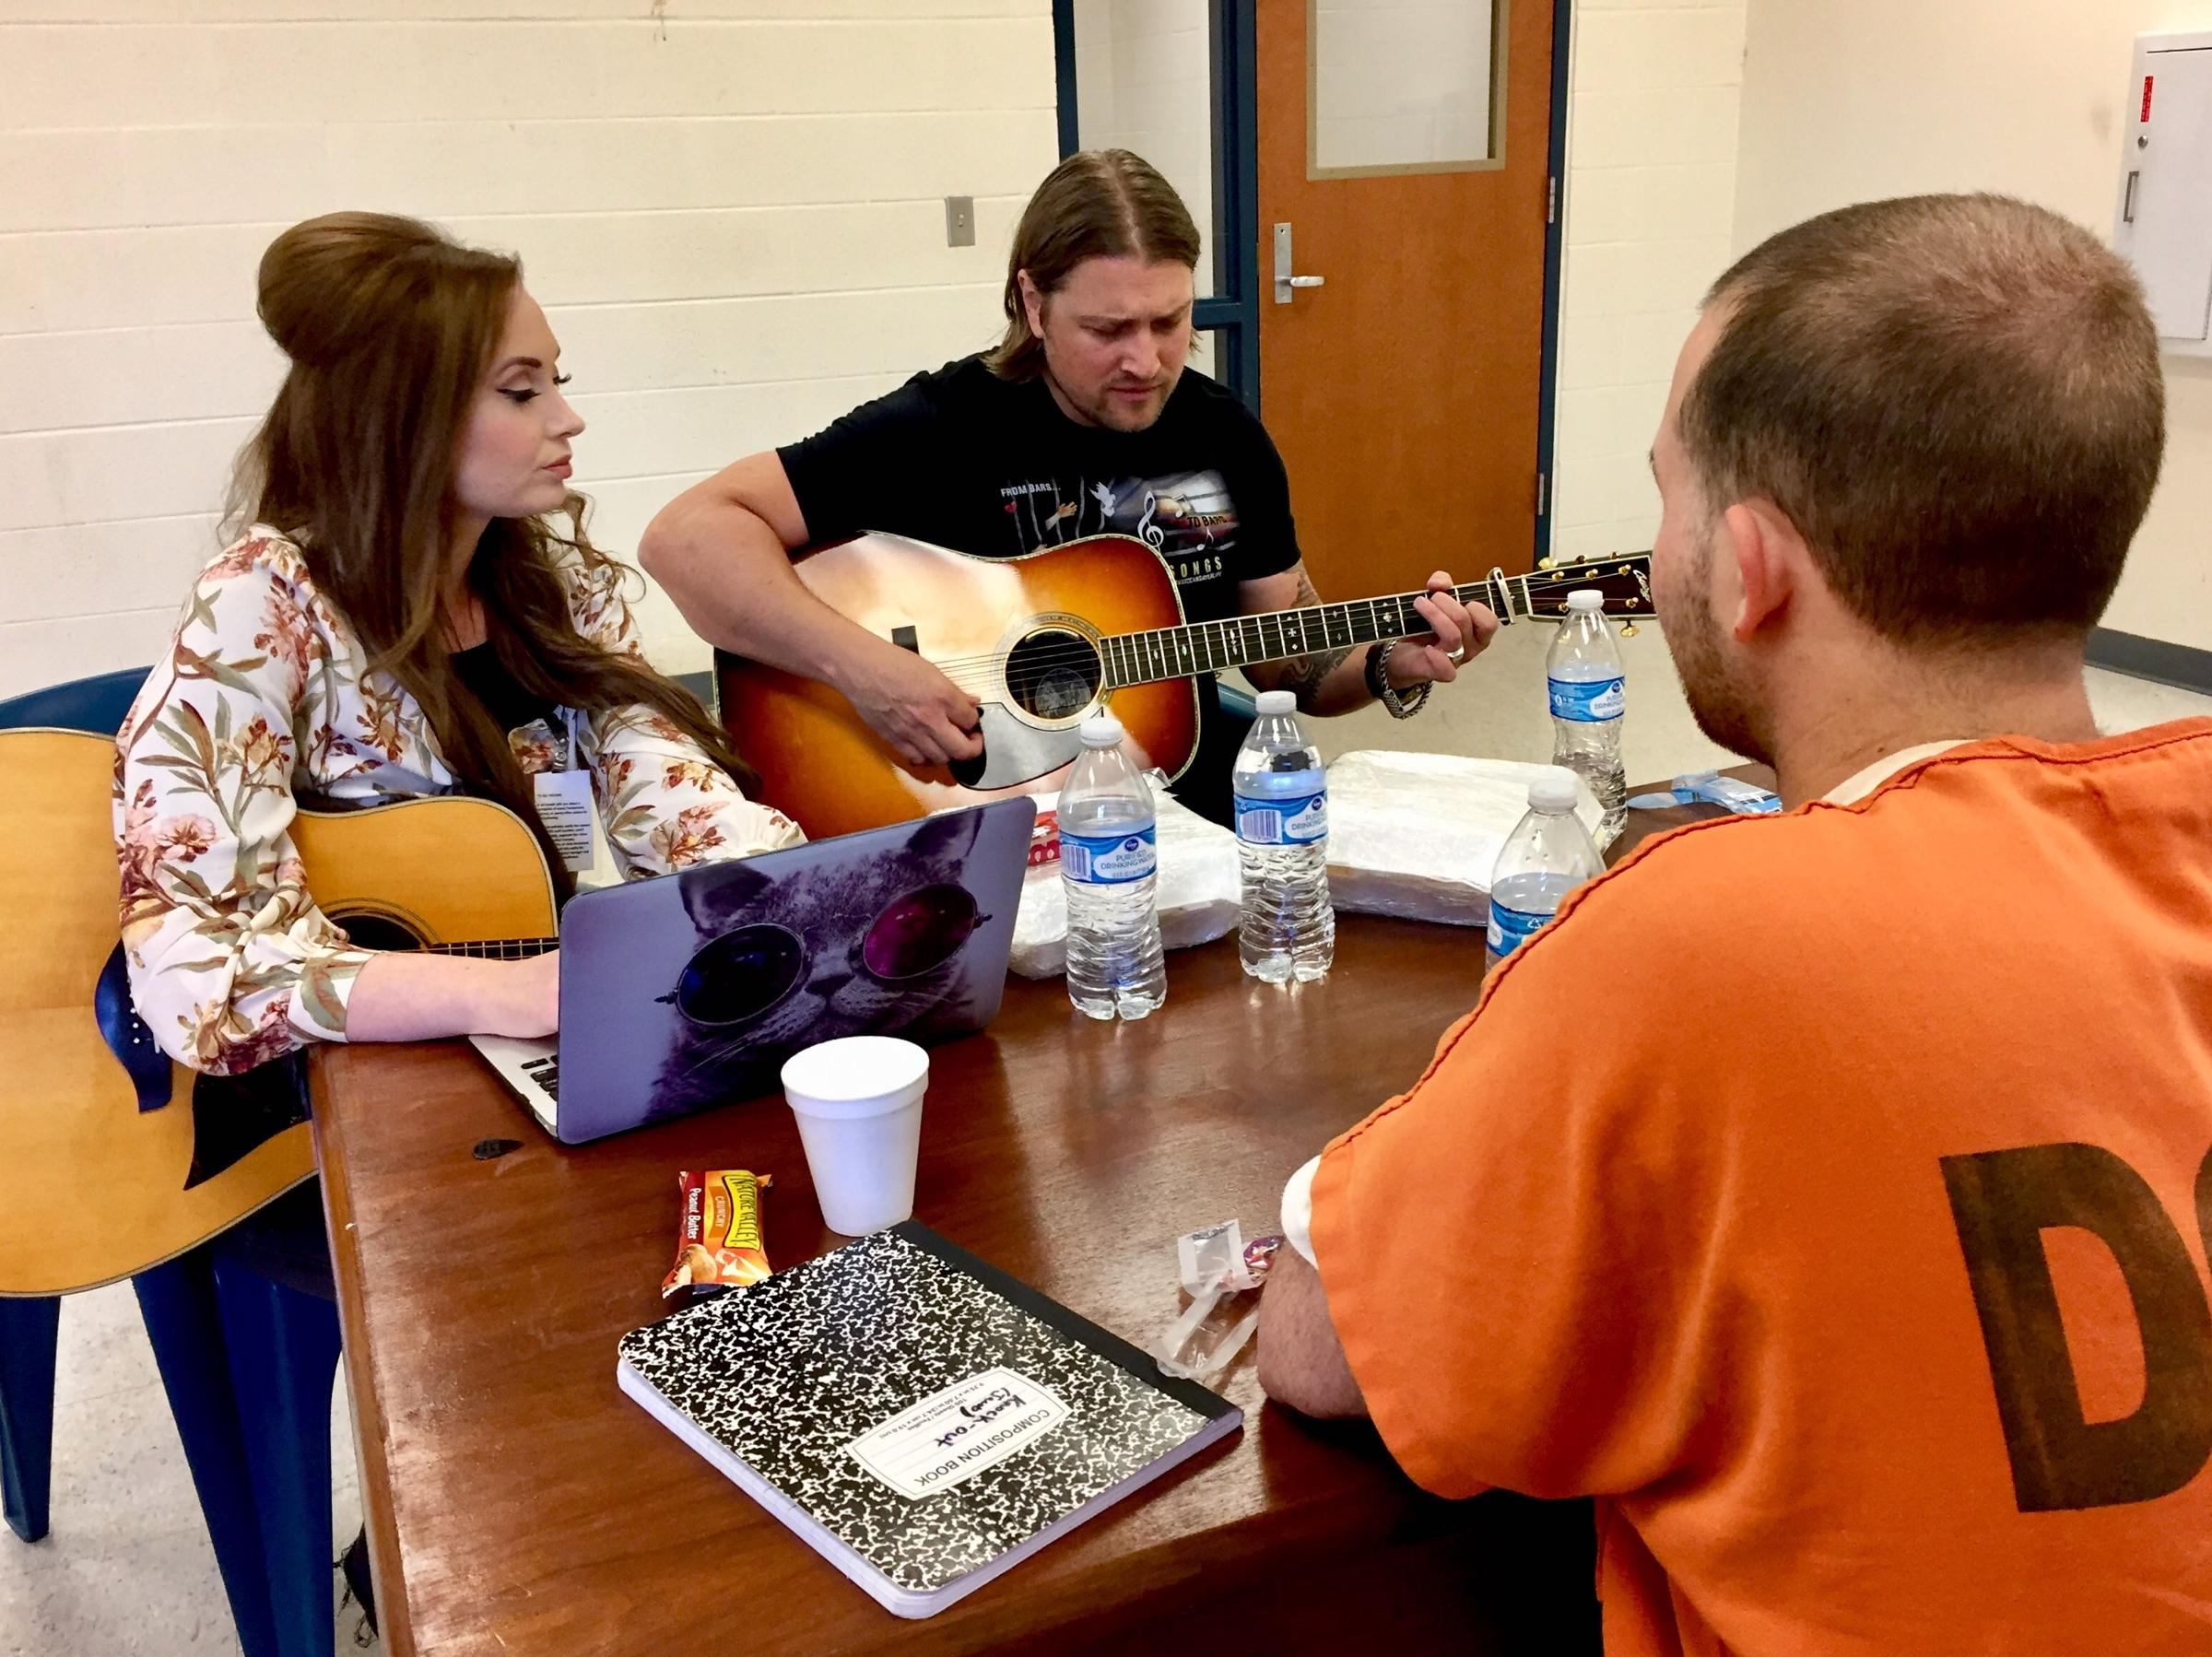 At The Nashville Jail, Inmates And Songwriters Come Together